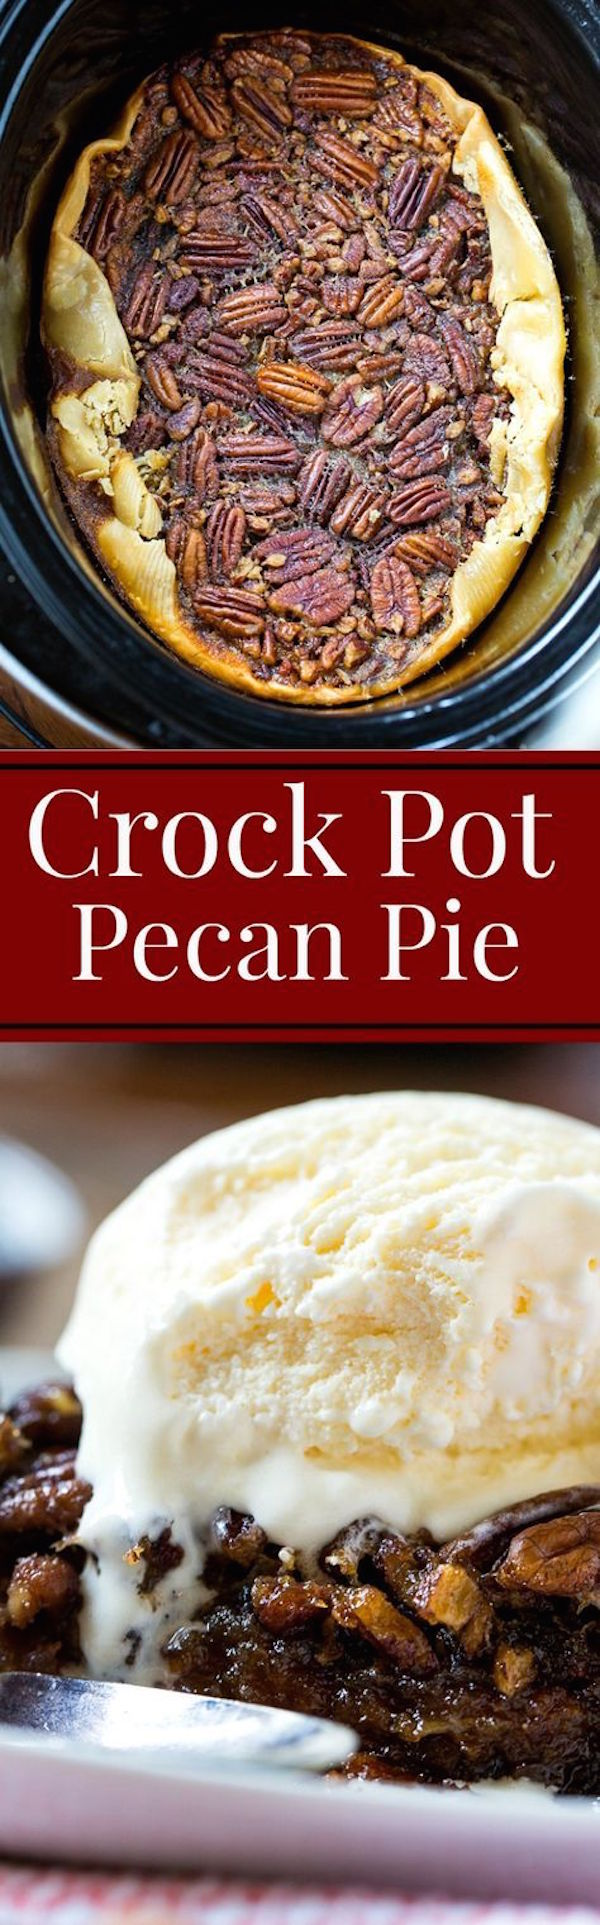 Did you know you could make pecan pie in a slow cooker! Crock Pot Pecan Pie is every bit as delicious as a pie cooked in the oven. So warm and gooey!